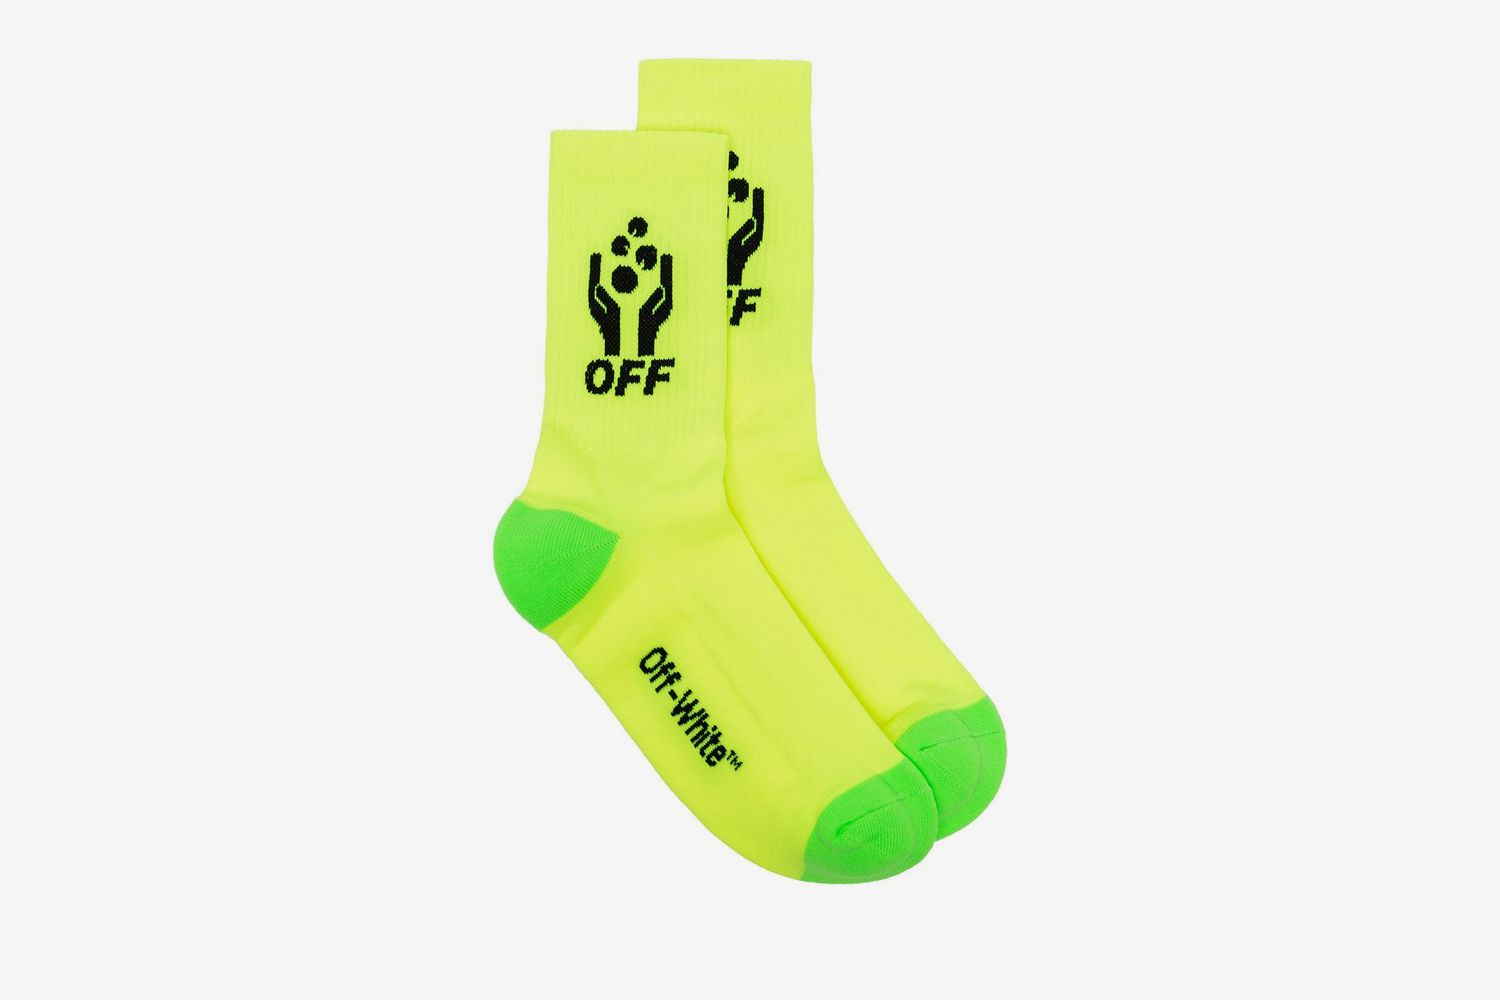 Fluorescent Yellow Hands Image socks